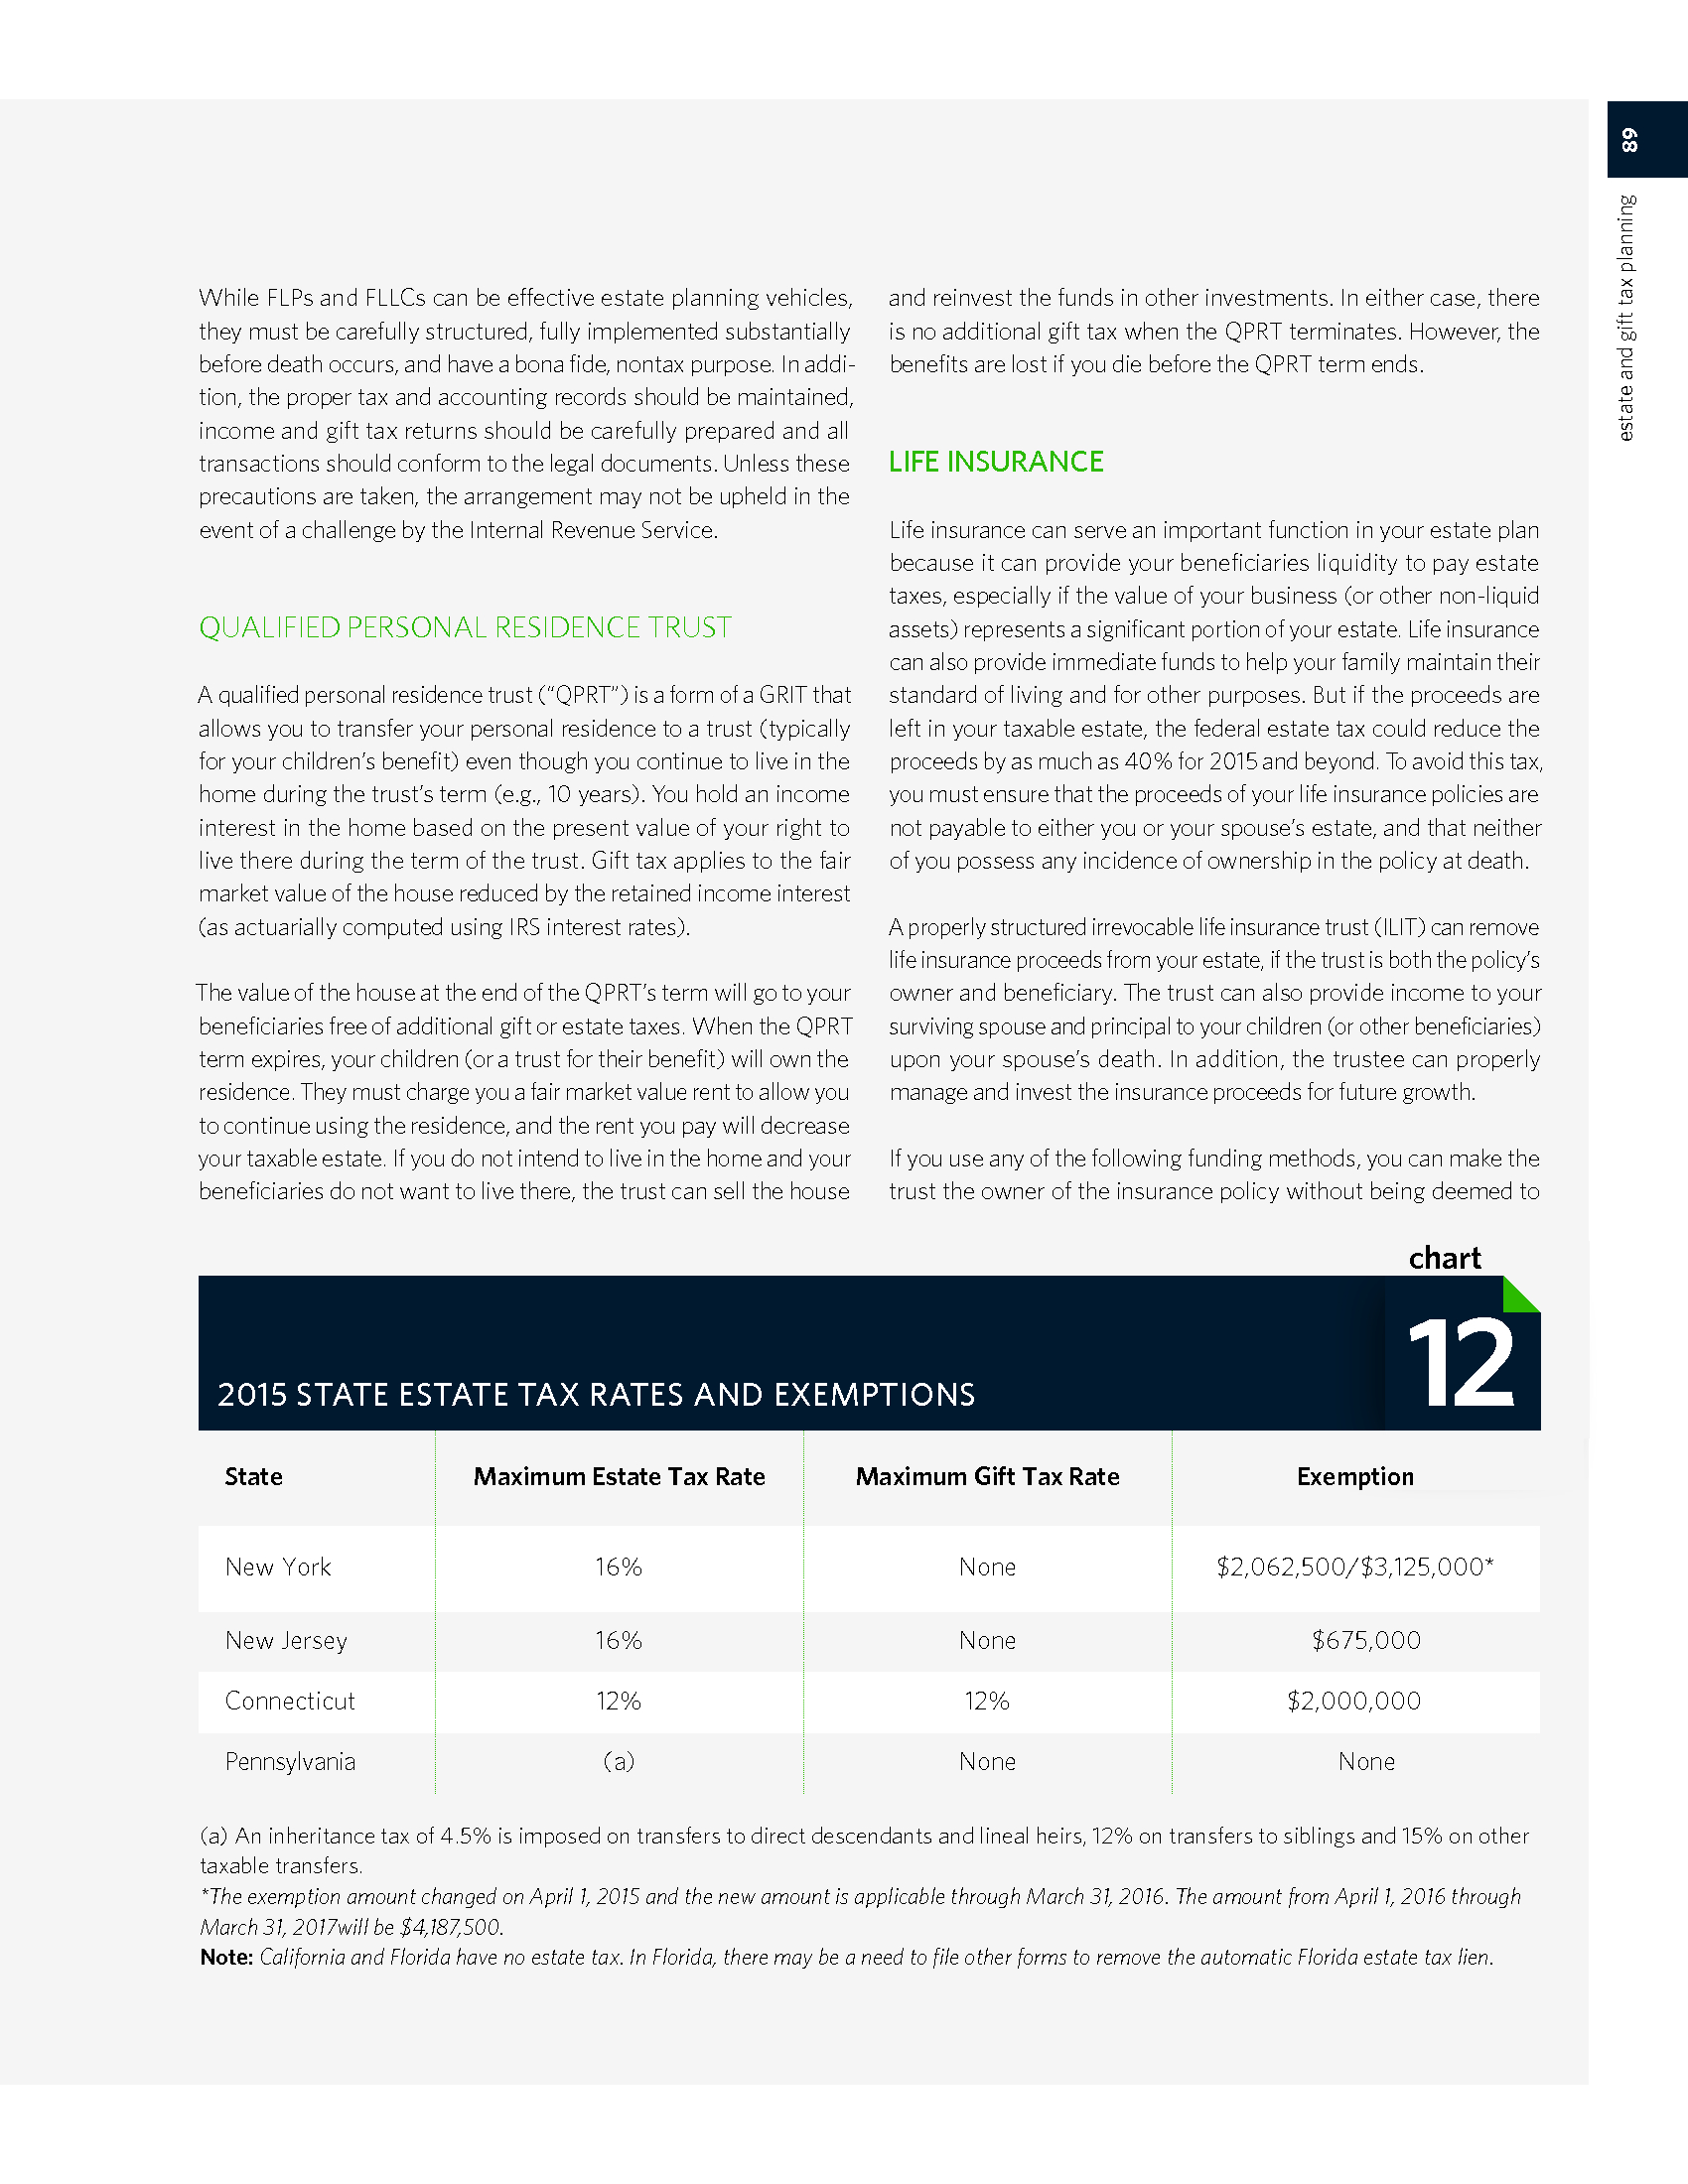 Zurich tax handbook 2015 2016 355 new spin off companies array advisorselect 2016 personal tax guide and tax tips for 2015 rh advisorselect com fandeluxe Images